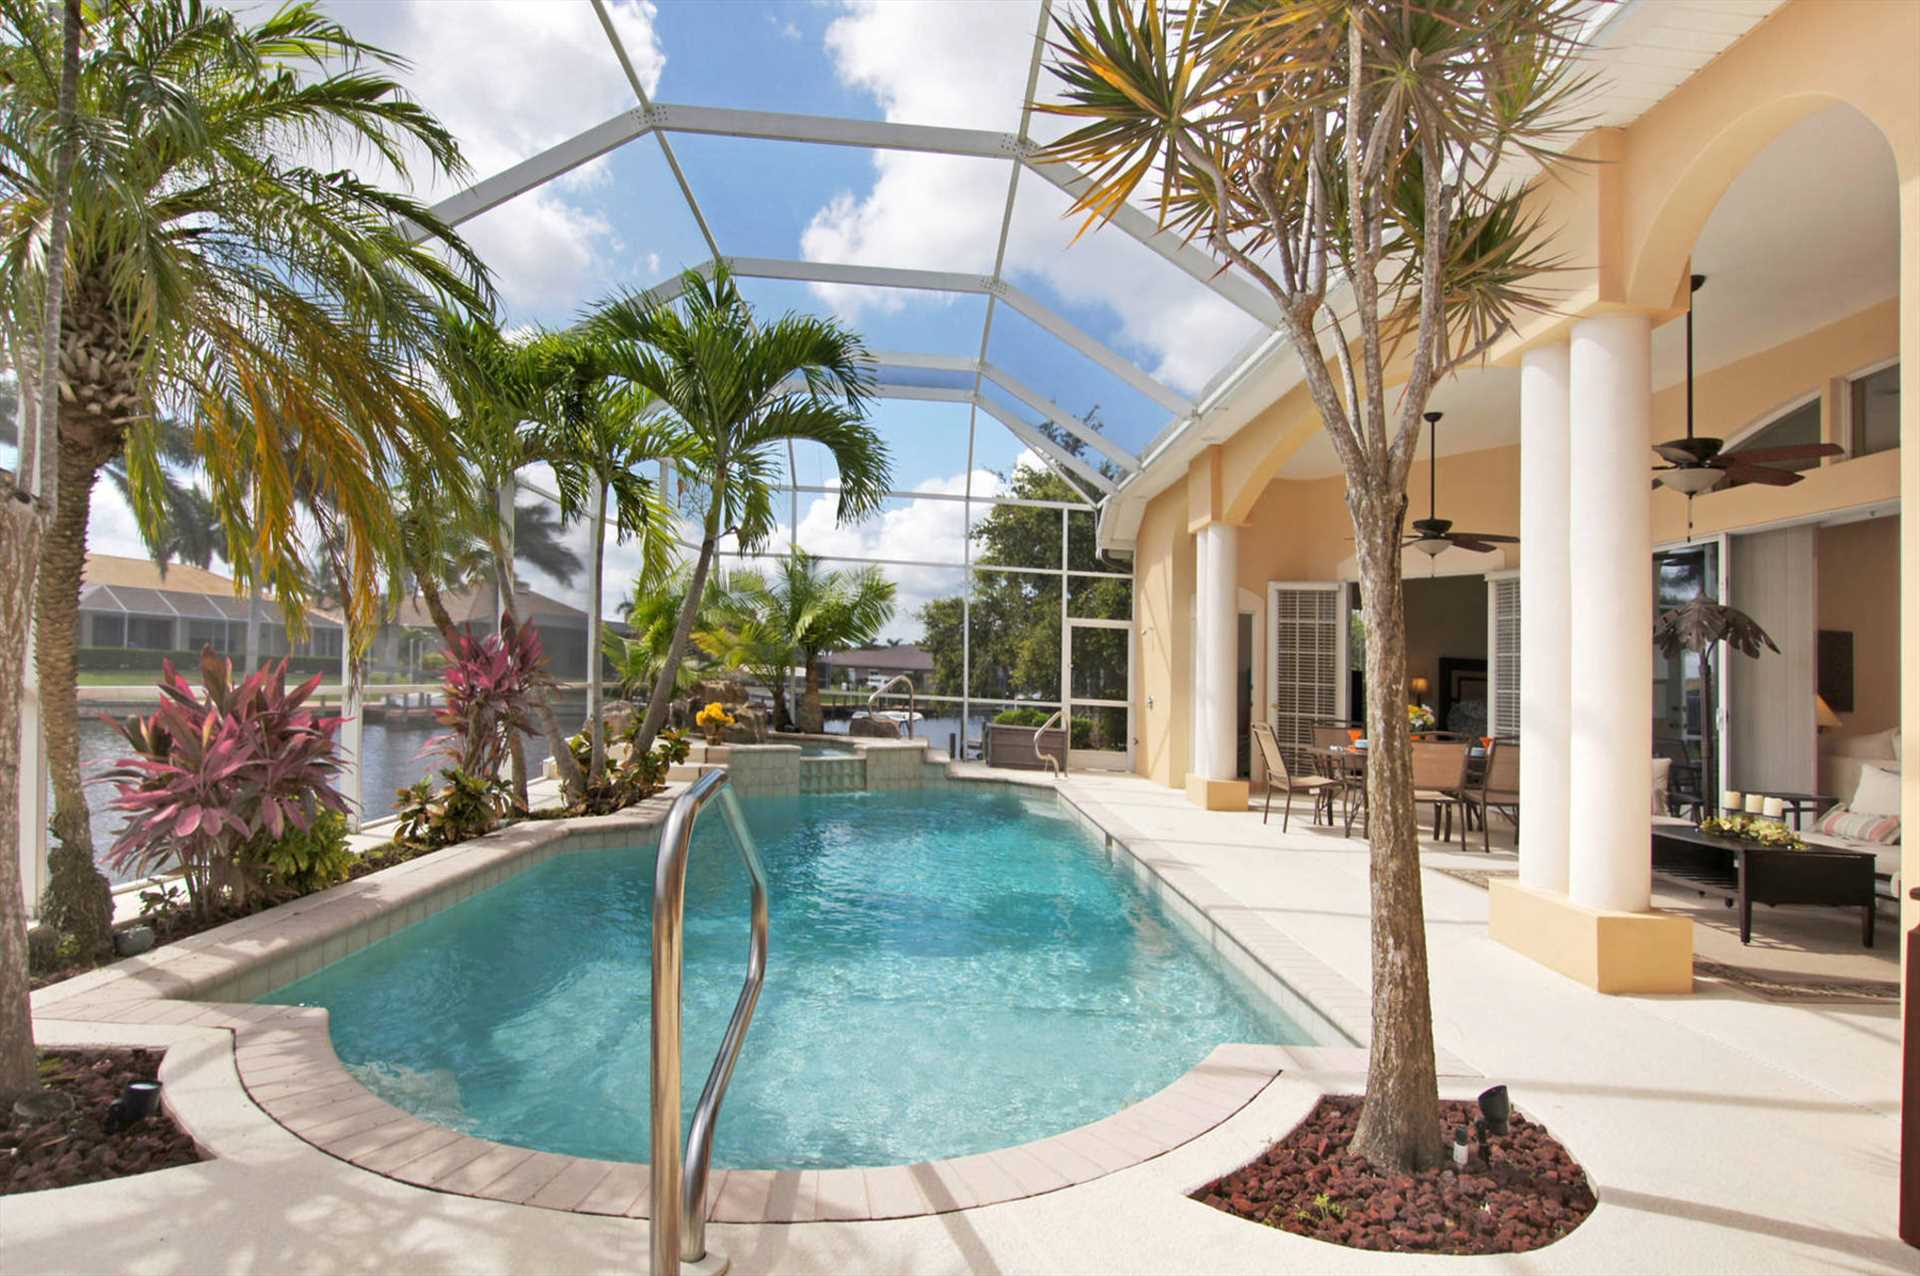 Pool Solarheizung Real Swfl Real Estate Services Llc Ferienhaus Mieten In Cape